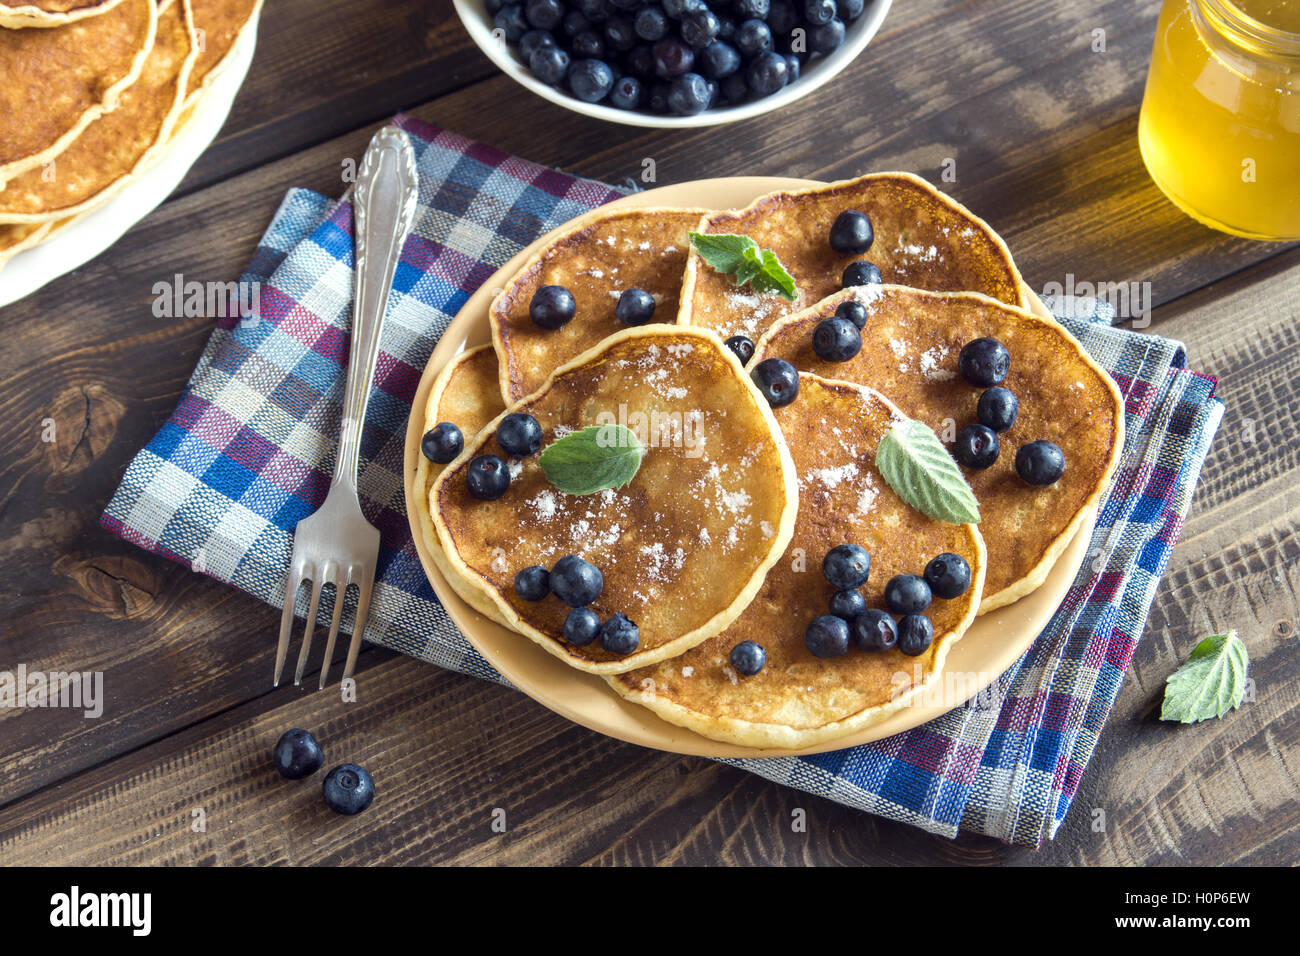 Pancakes on plate with blueberries, mint and honey for breakfast - homemade healthy vegetarian food Stock Photo